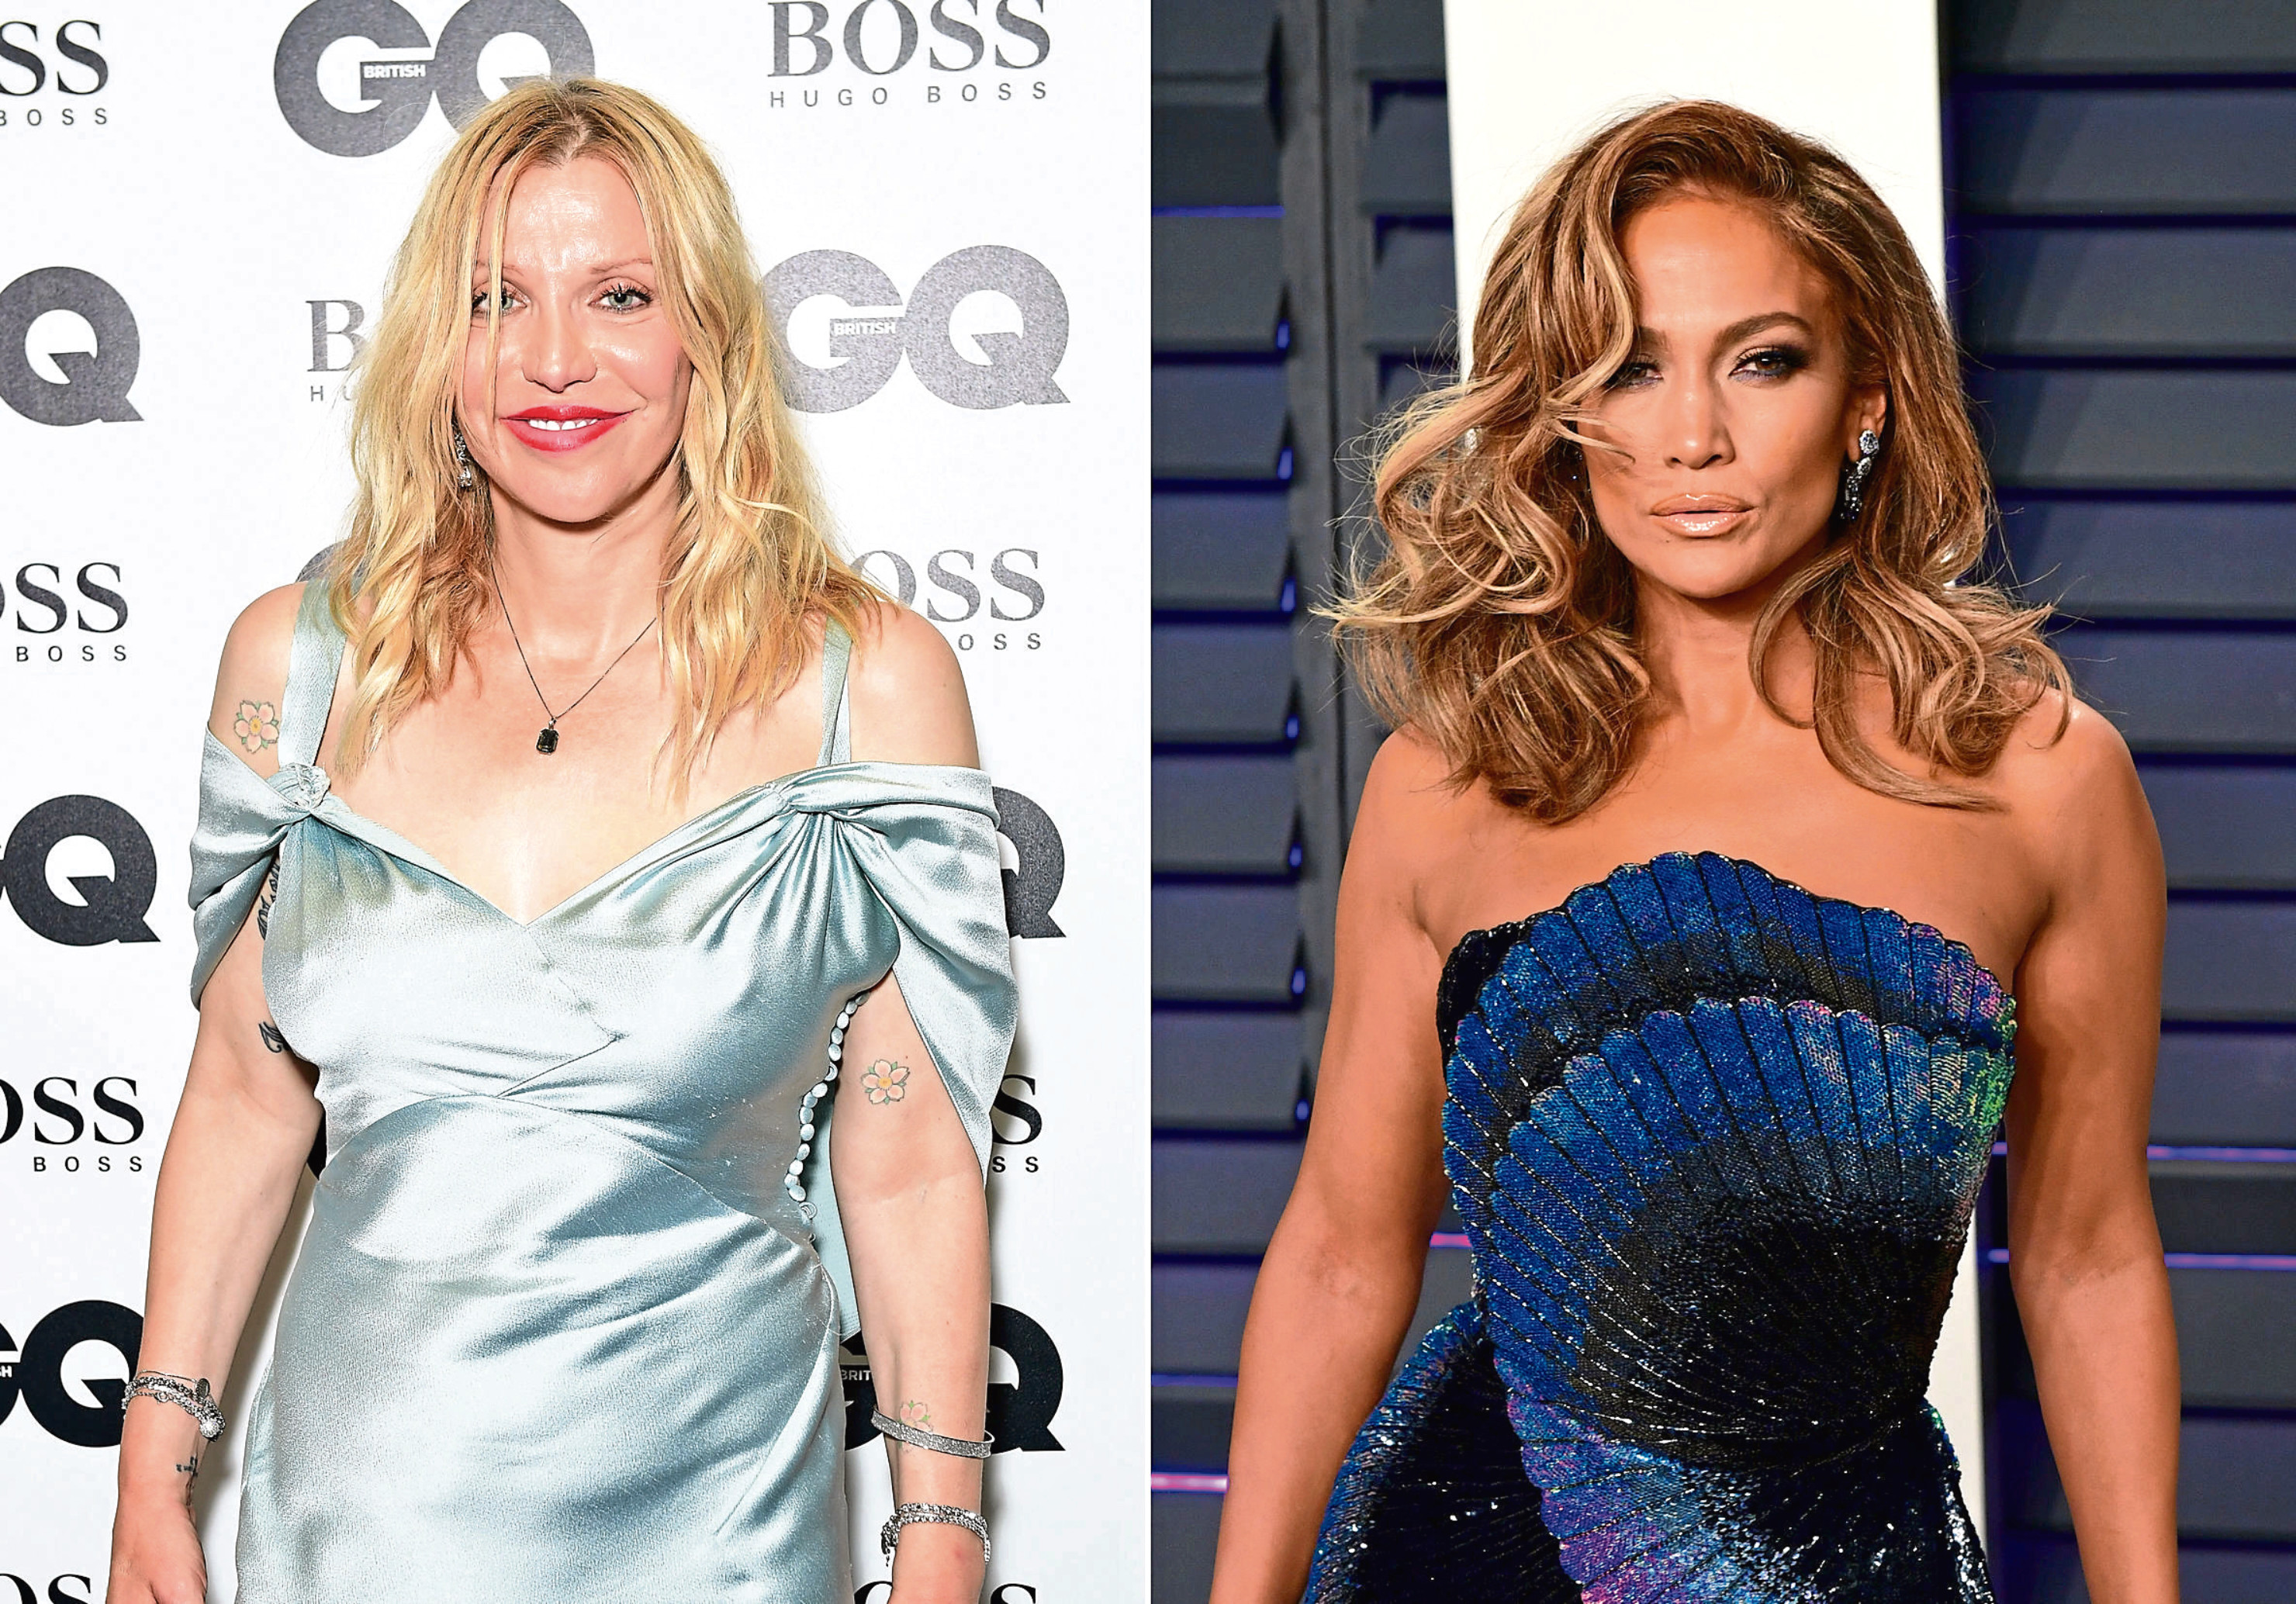 Courtney Love (l) and Jennifer Lopez (r).